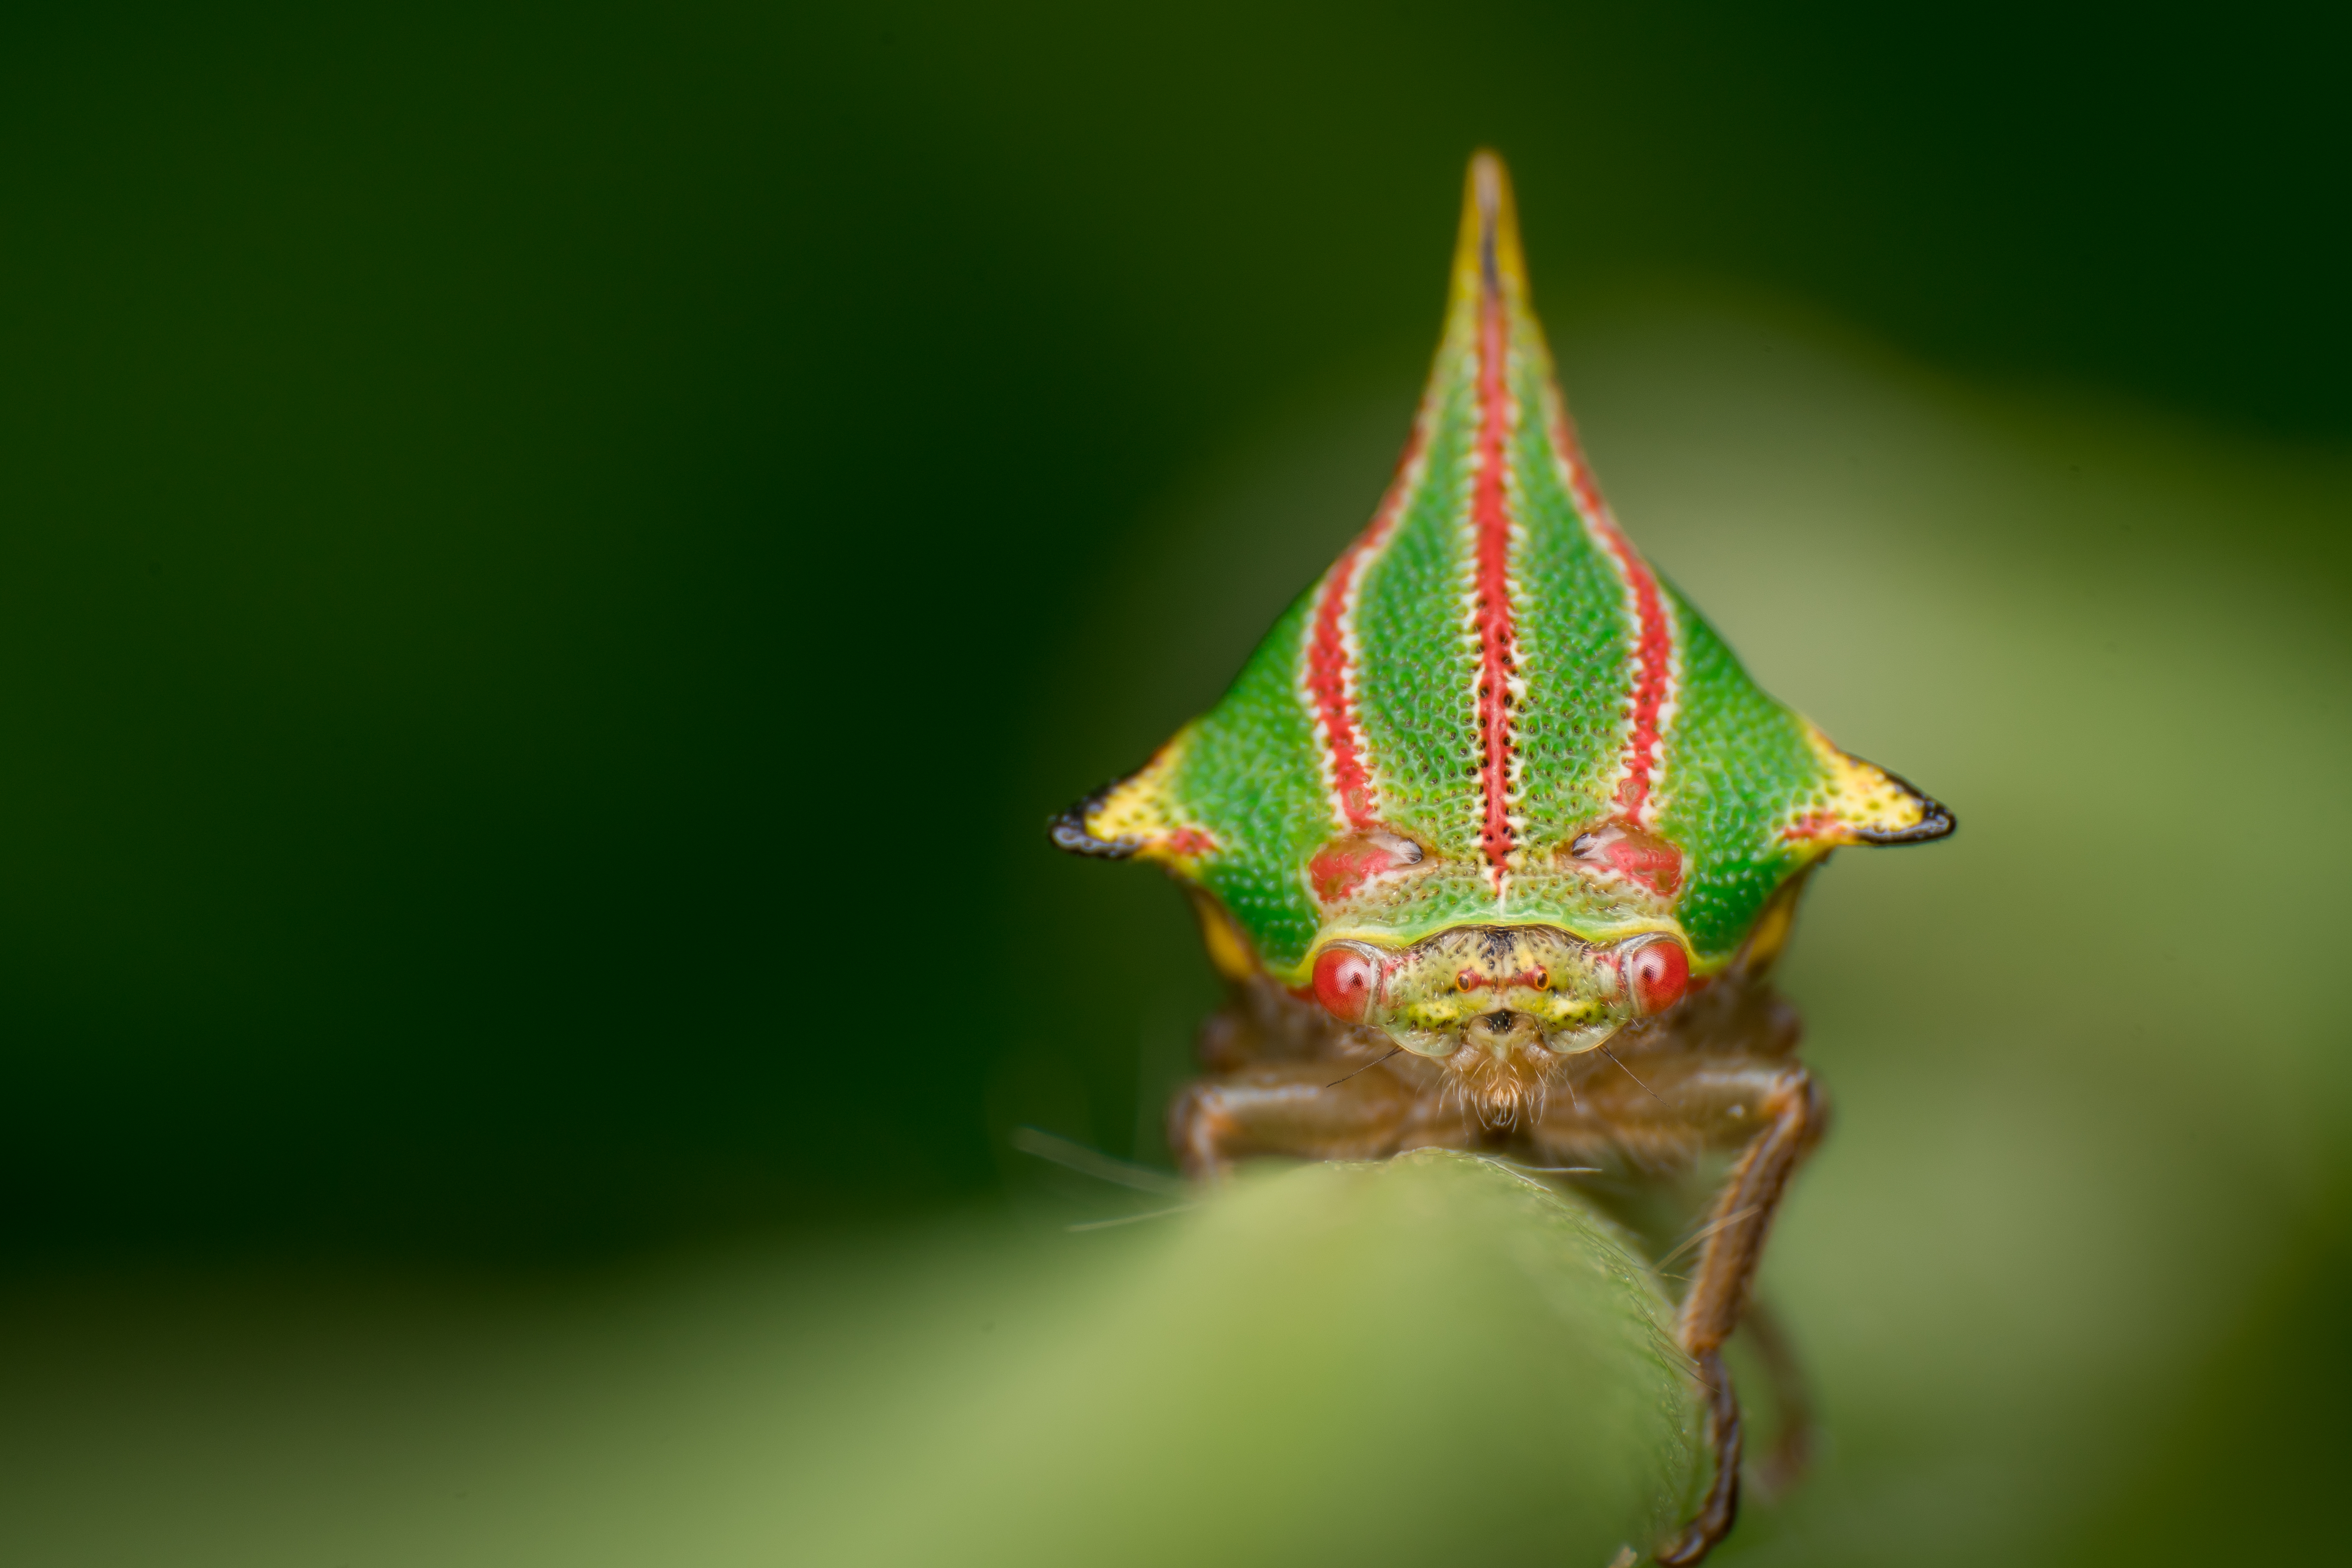 A treehopper insect with a colorful, triangular